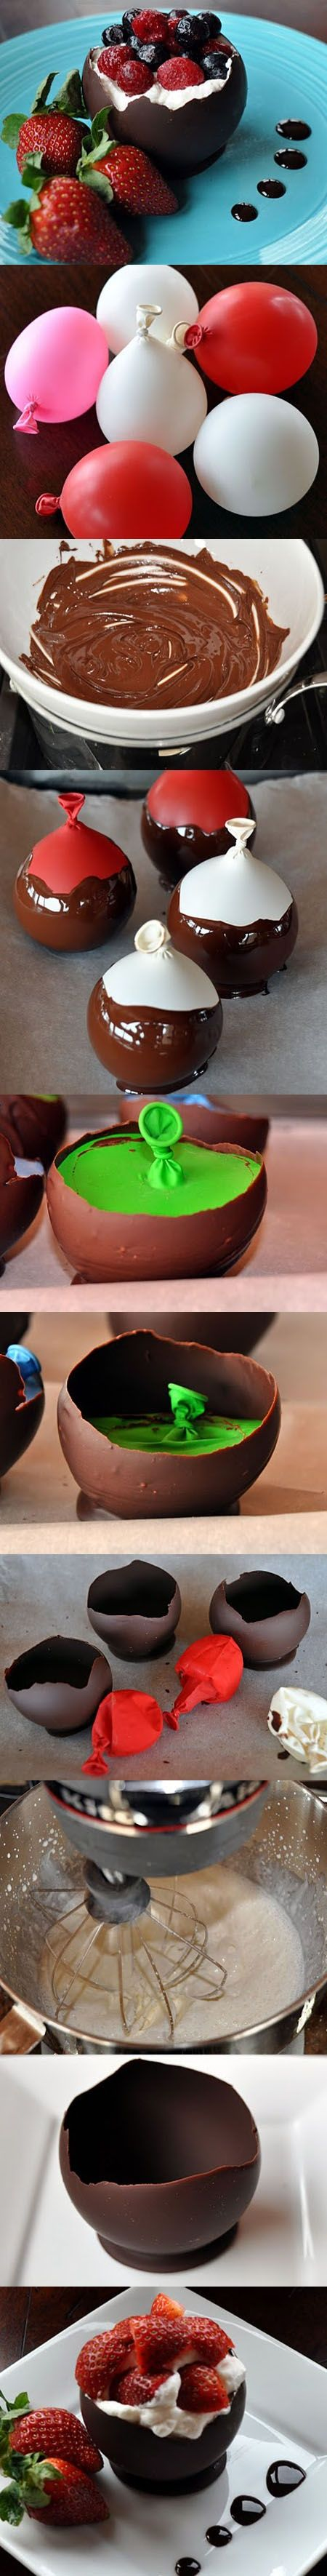 Chocolate bowl!  OMG - must do!